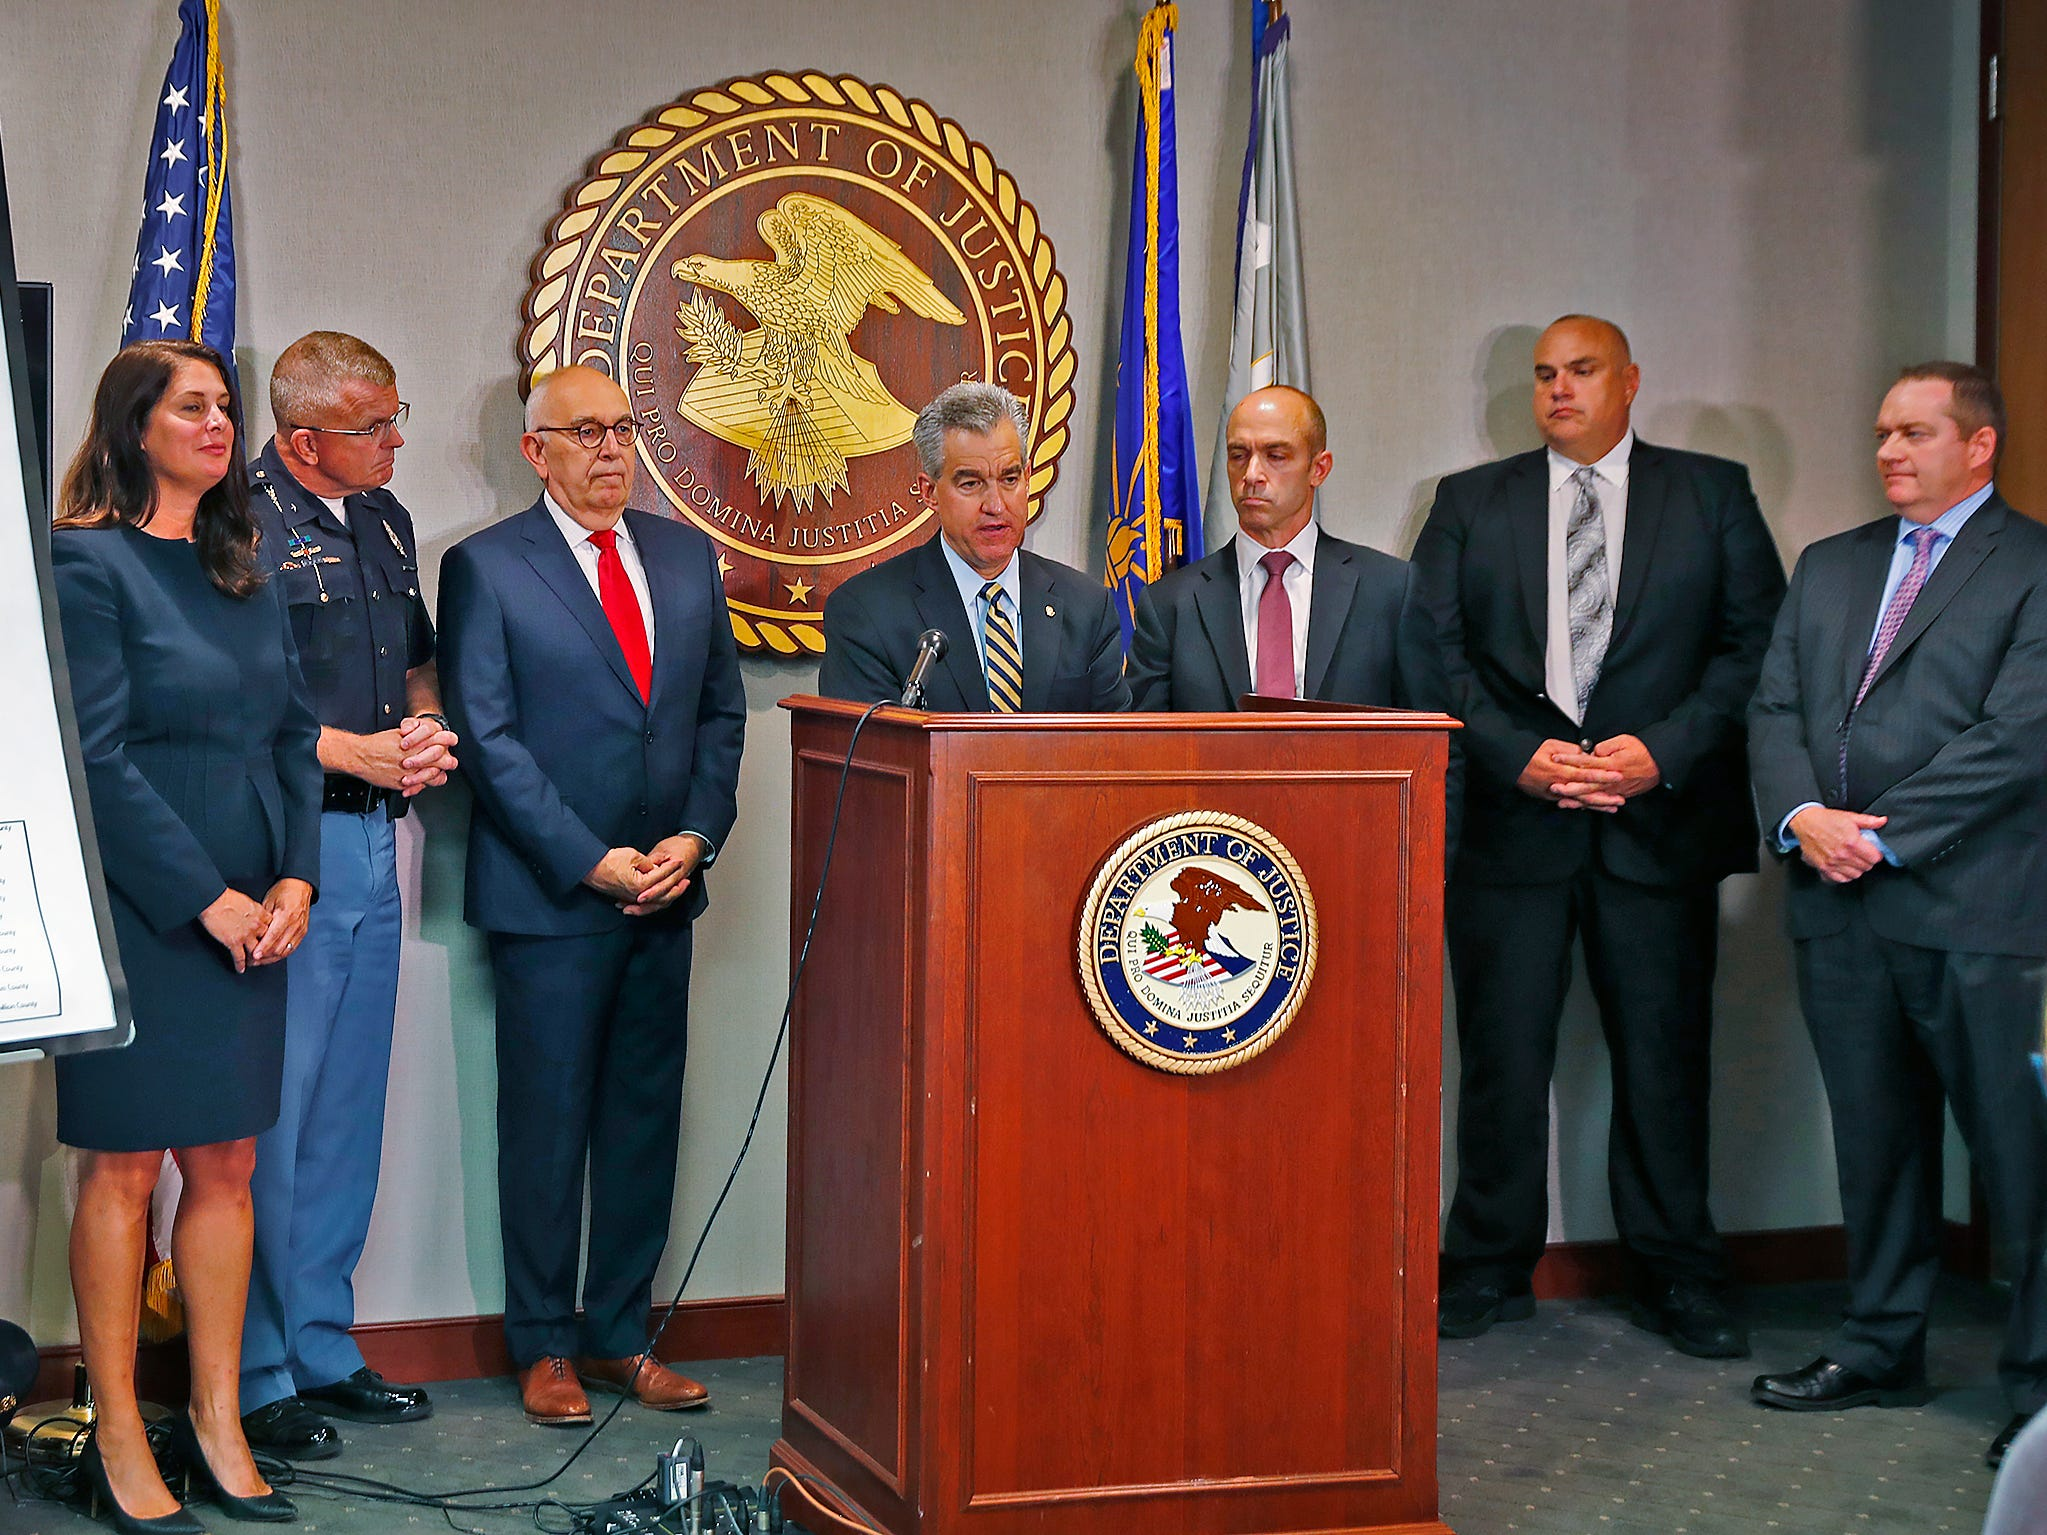 "U.S. Attorney for the Southern District of Indiana Josh Minkler, center, speaks during a press conference at the U.S. Attorney's office, Thursday, Oct. 11, 2018.  U.S. Attorney Minkler, the FBI, Indiana State Police, and the State Board of Accounts release details about joint operation in a crackdown involving ""state-wide corruption,"" from Operation Public Accountability. From left to right: Assistant U.S. Attorney Tiffany Preston, Indiana State Police Superintendent Doug Carter, Marion County Prosecutor Terry Curry, Minkler, FBI Special Agent in Charge Grant Mendenhall, Indiana State Board of Accounts State Examiner Paul Joyce, and Deputy Executive Director of the Indiana Prosecuting Attorney's Council Chris Naylor."